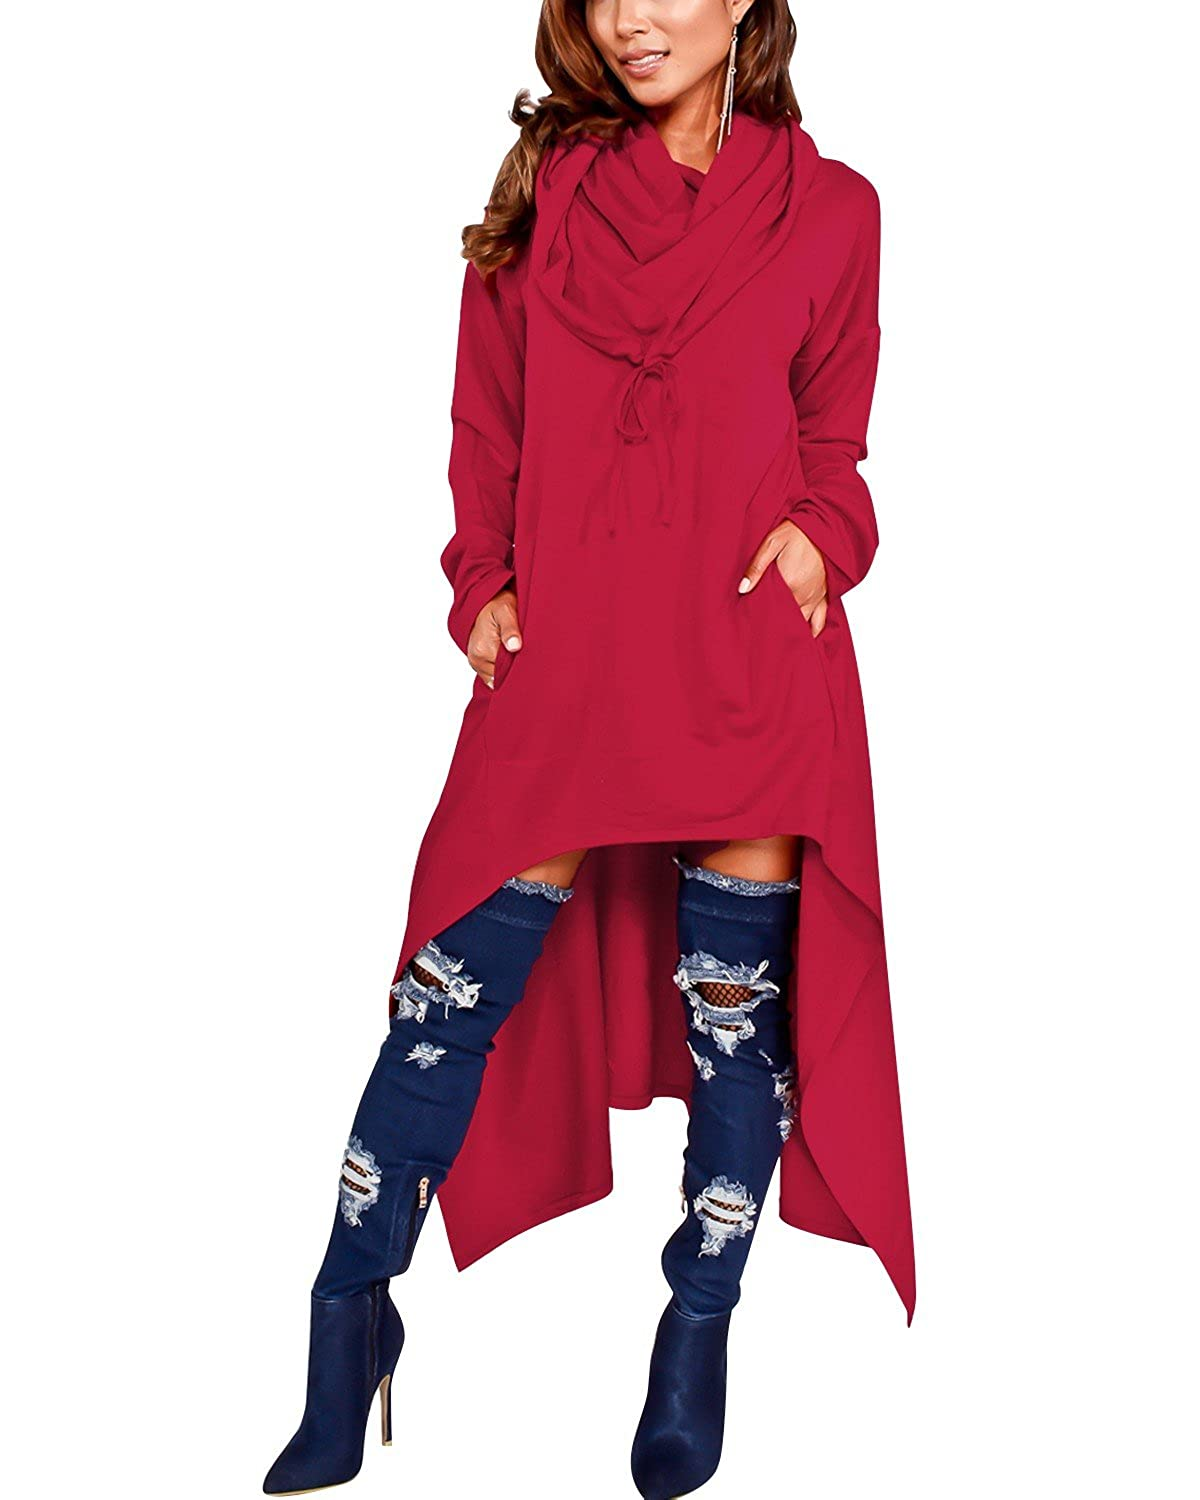 GIKING Women\'s Plus Size Hoodies Dress with Pockets Loose Fit Pullover  Sweatshirt Dress